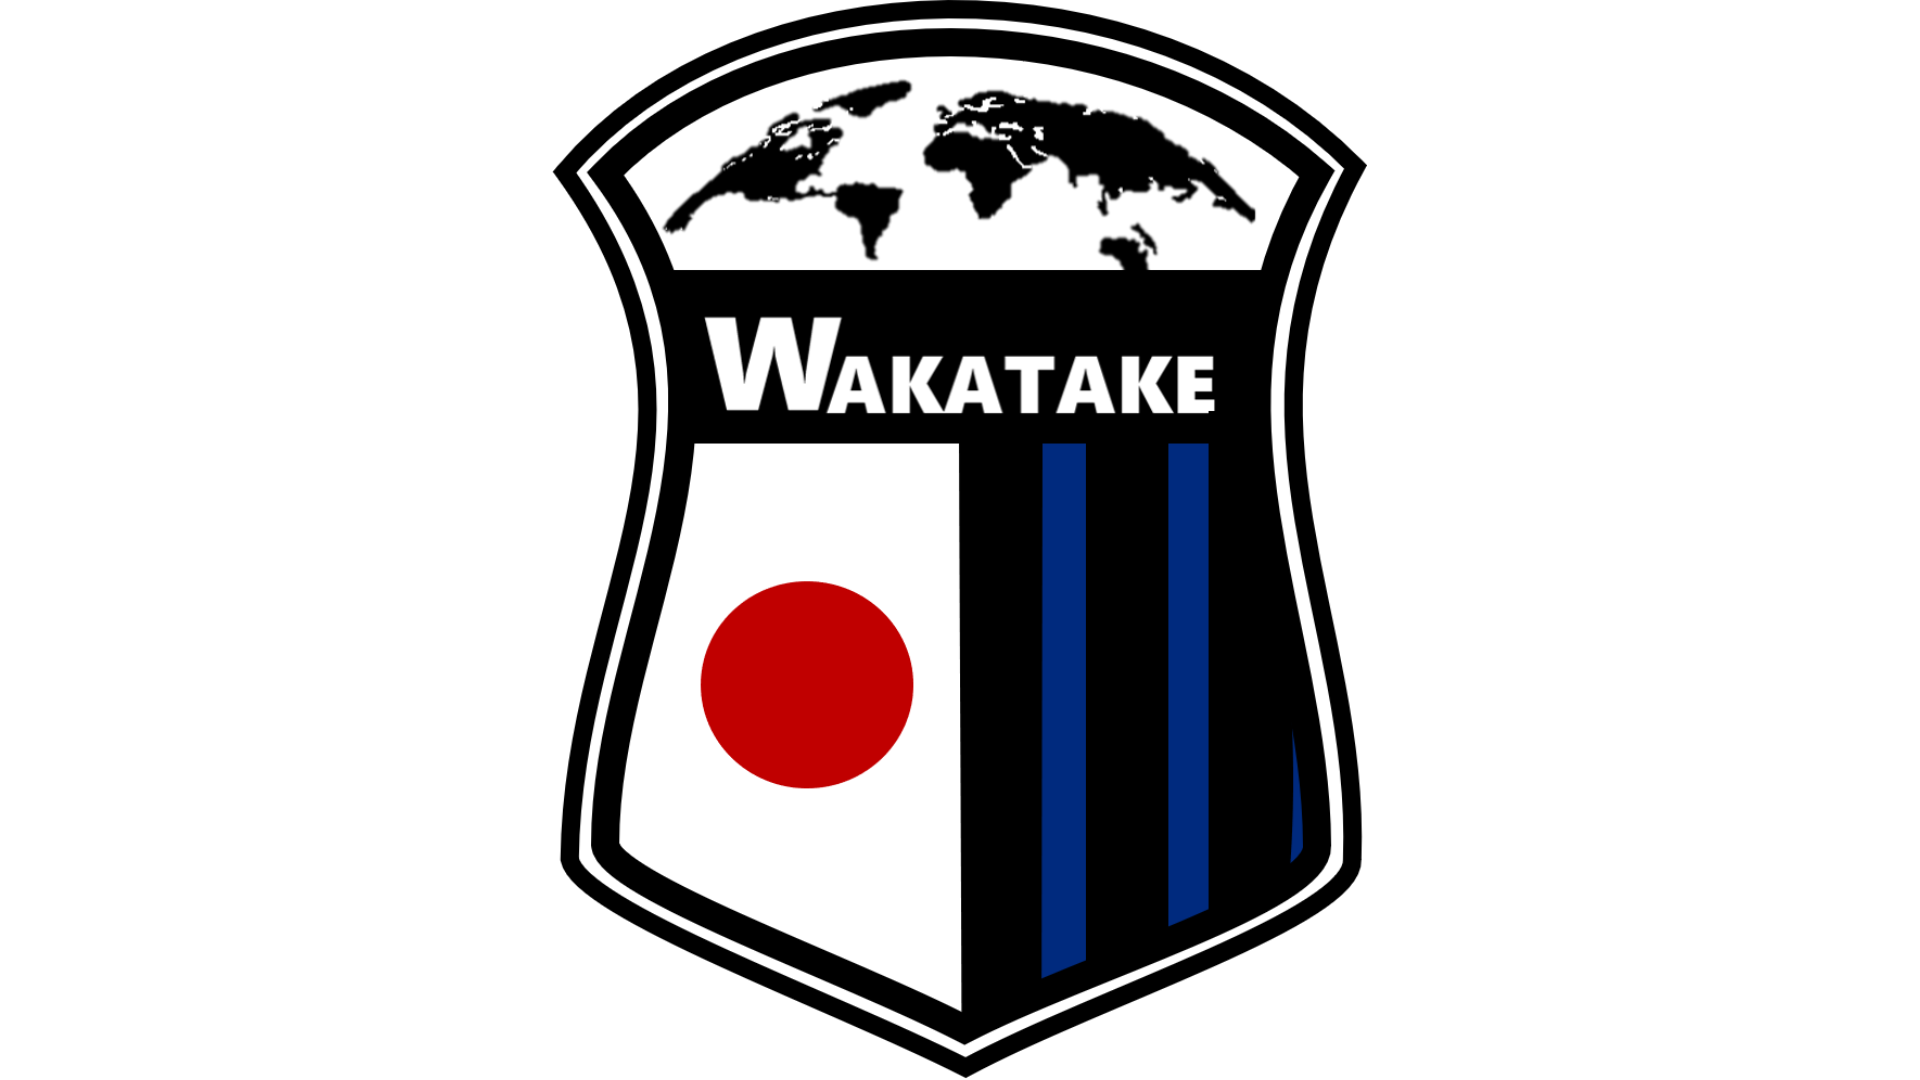 WAKATAKE GROUP